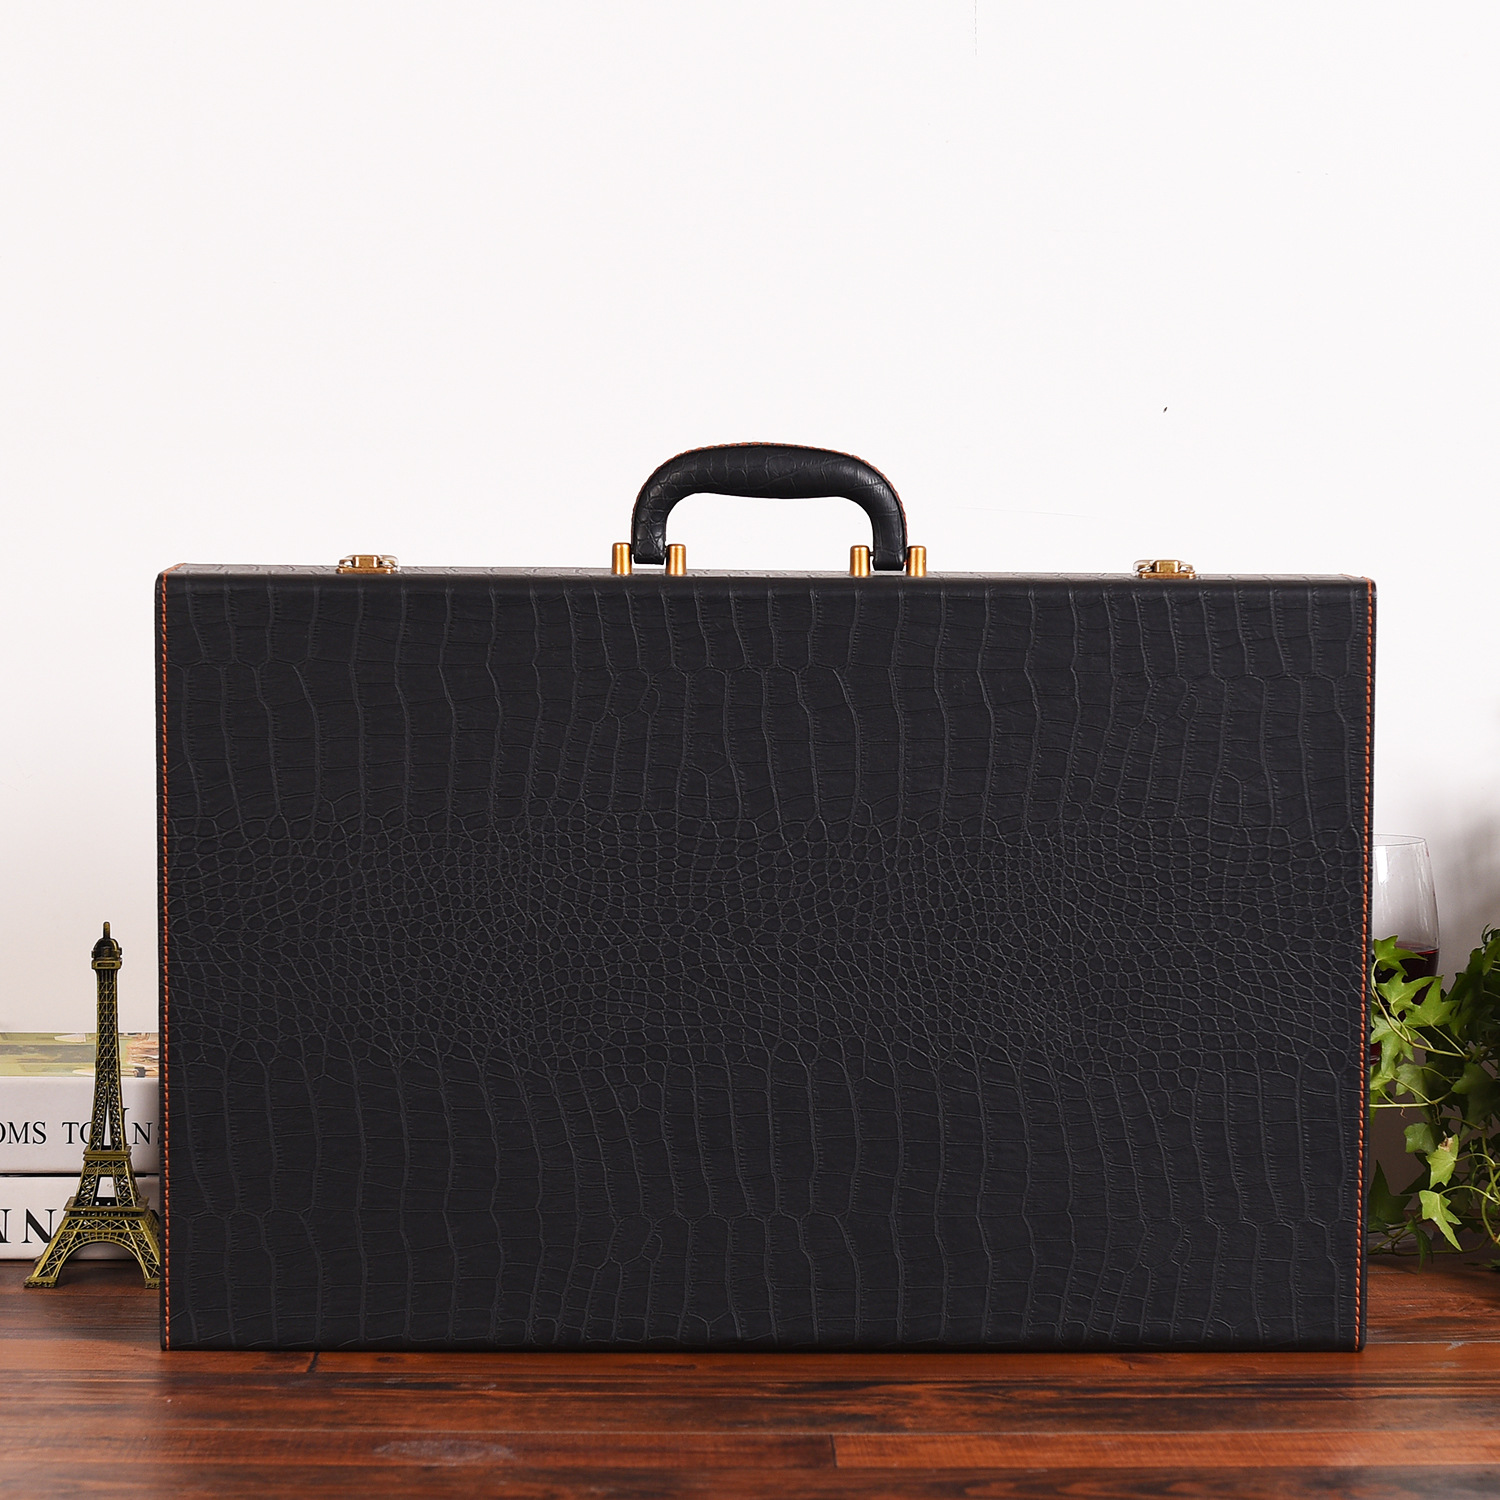 Haoyuan new six-pack wine leather box, high-end wine packaging gift box